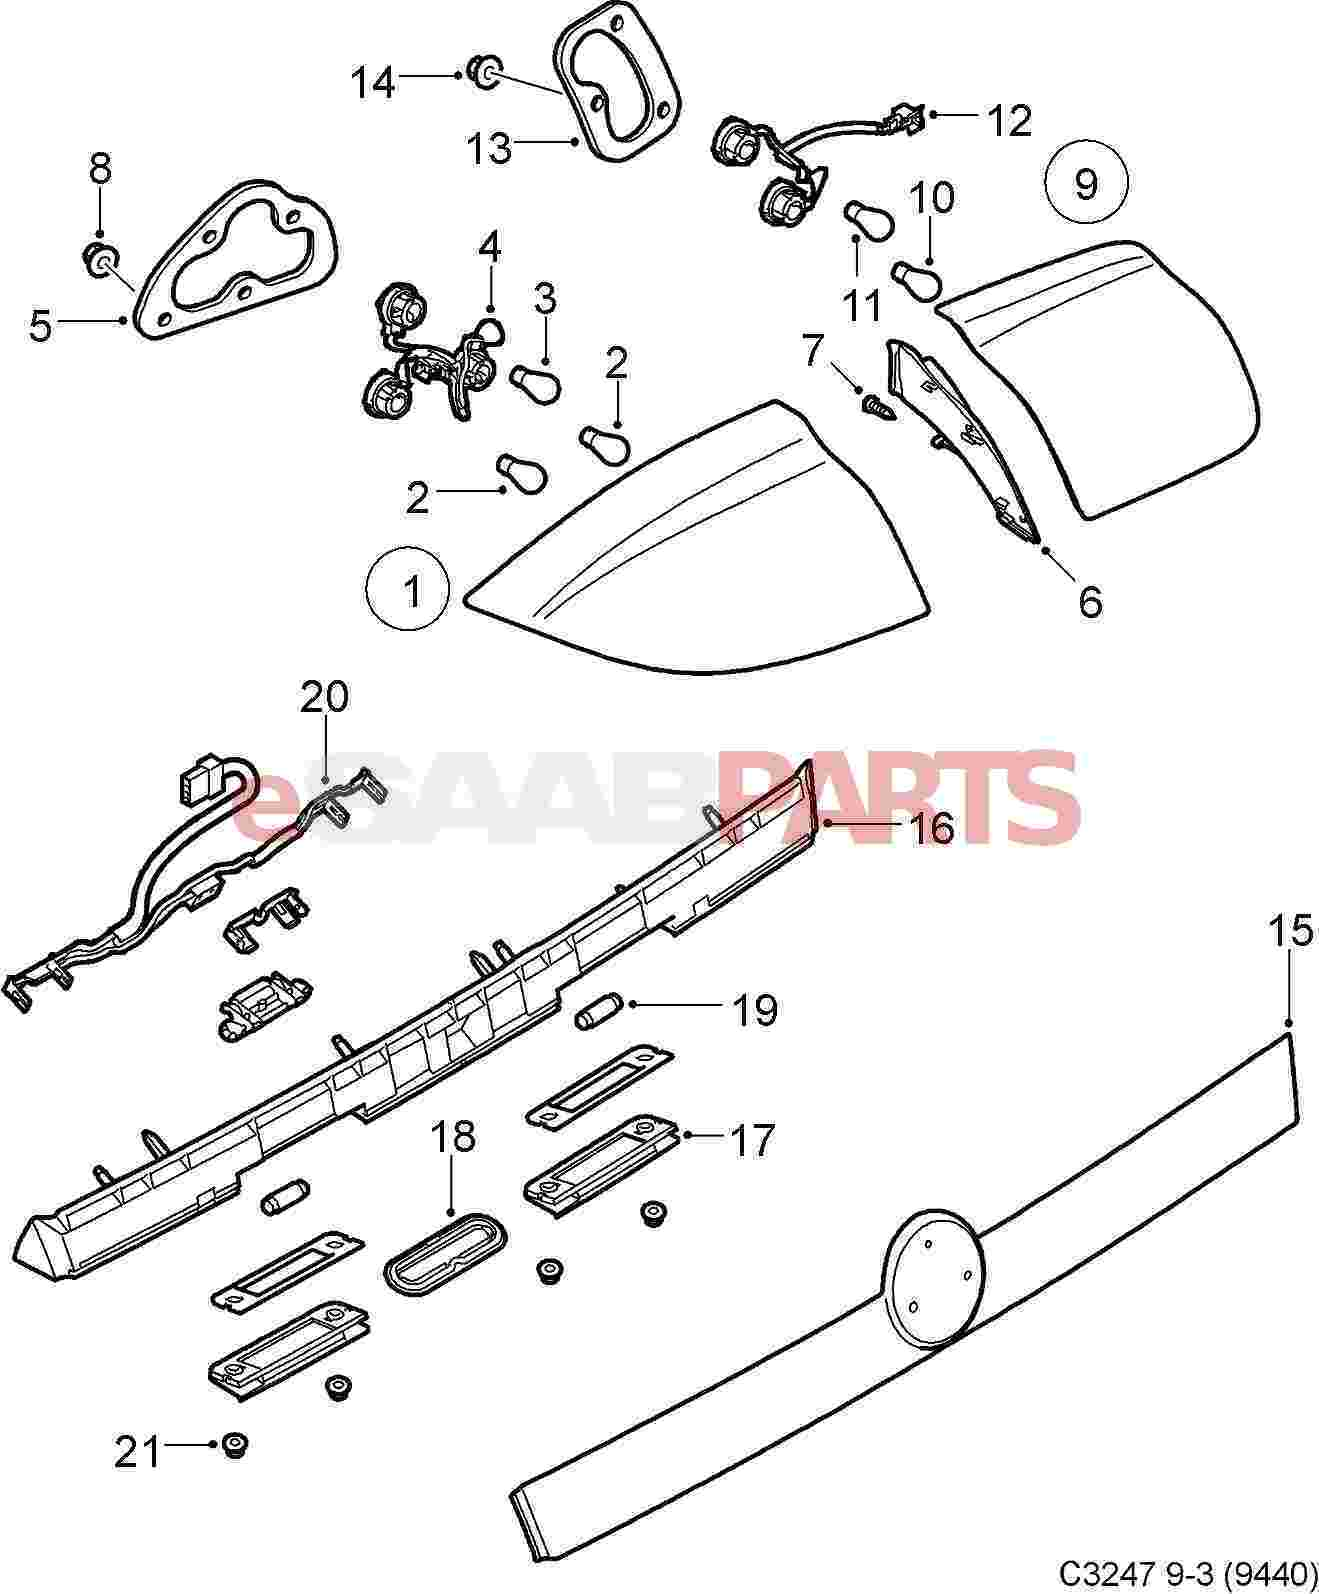 Saab 9 3 9440 Electrical Parts Tail Lights 93 Rear Light Wiring Diagram Cv 08 12